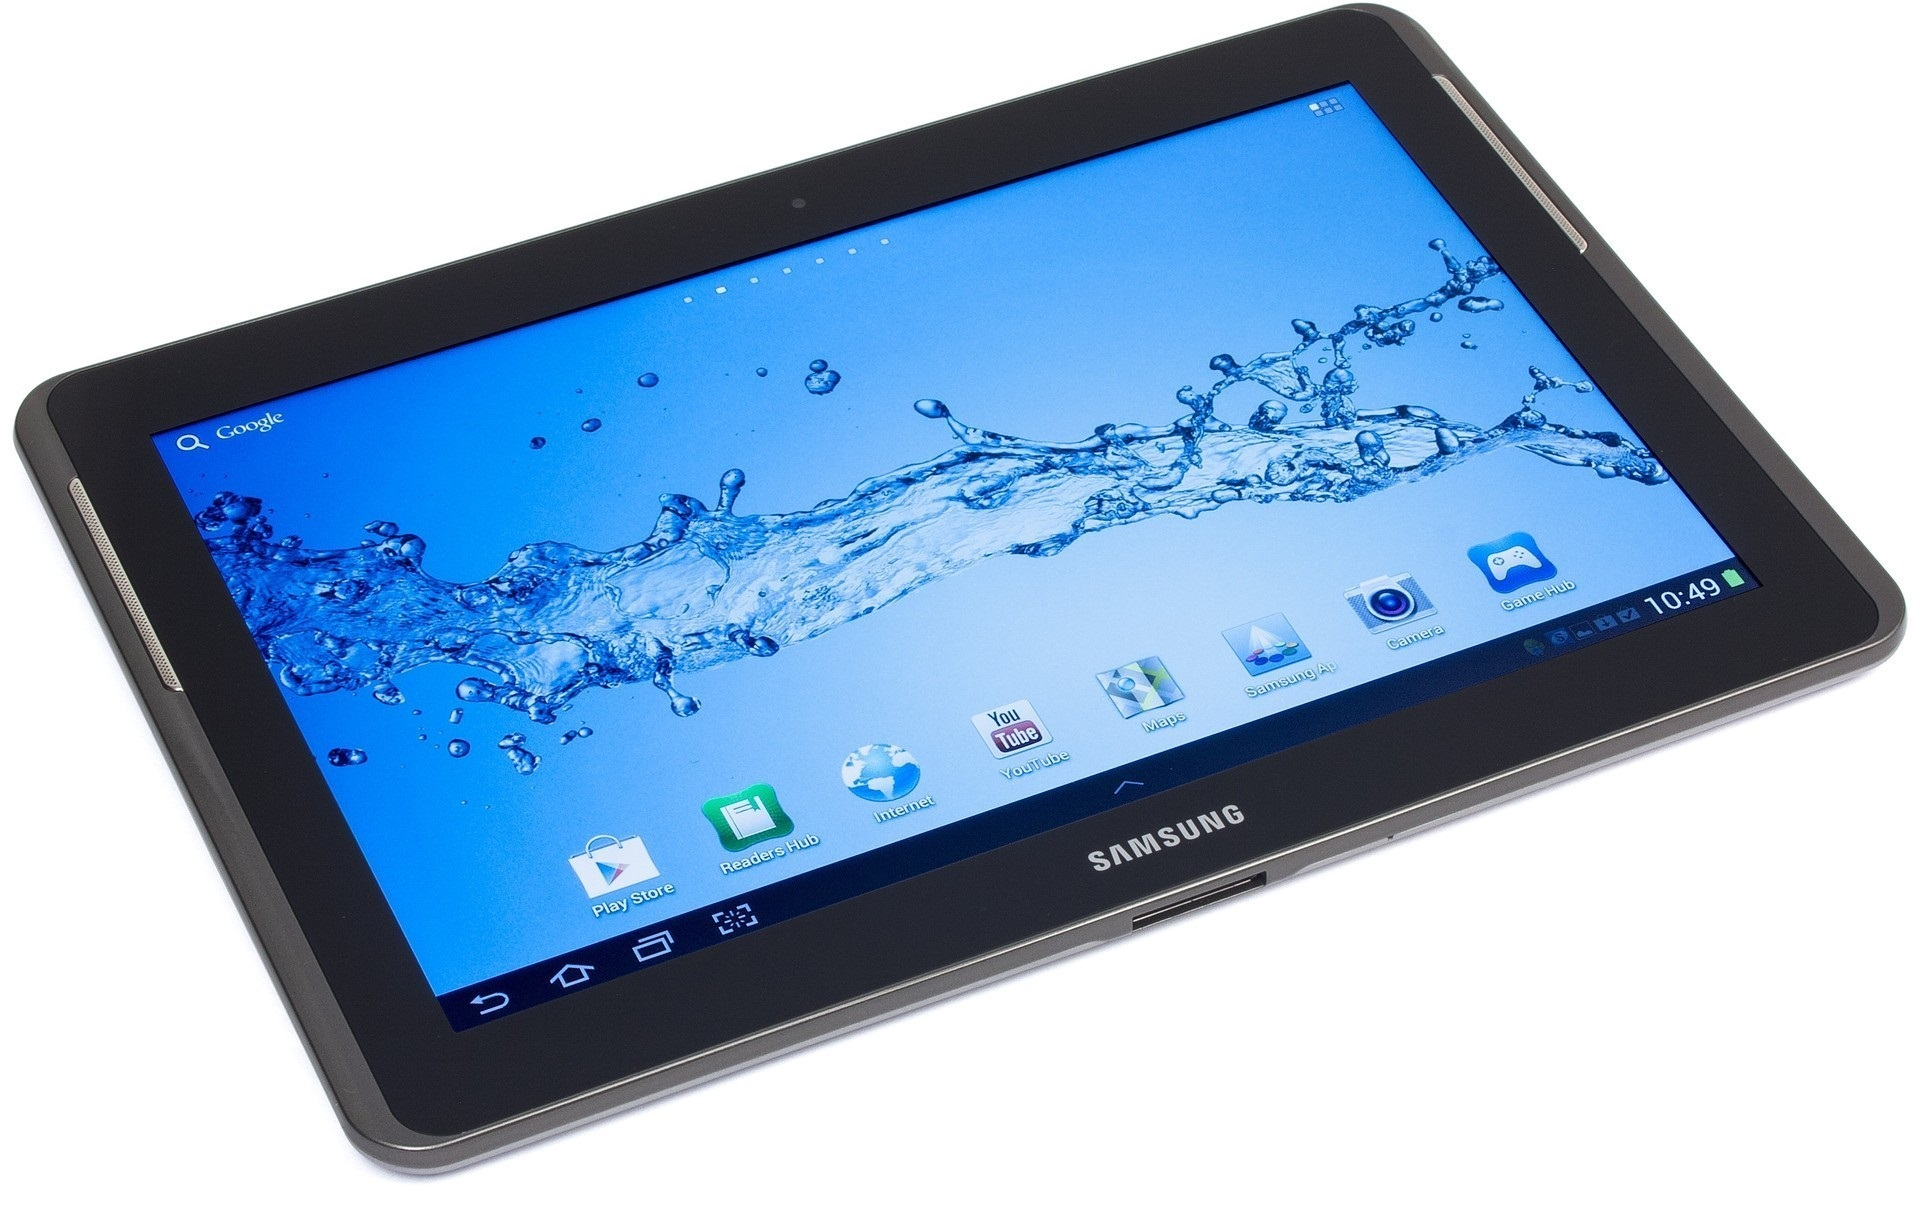 Samsung Tablet Pictures 1920x1210